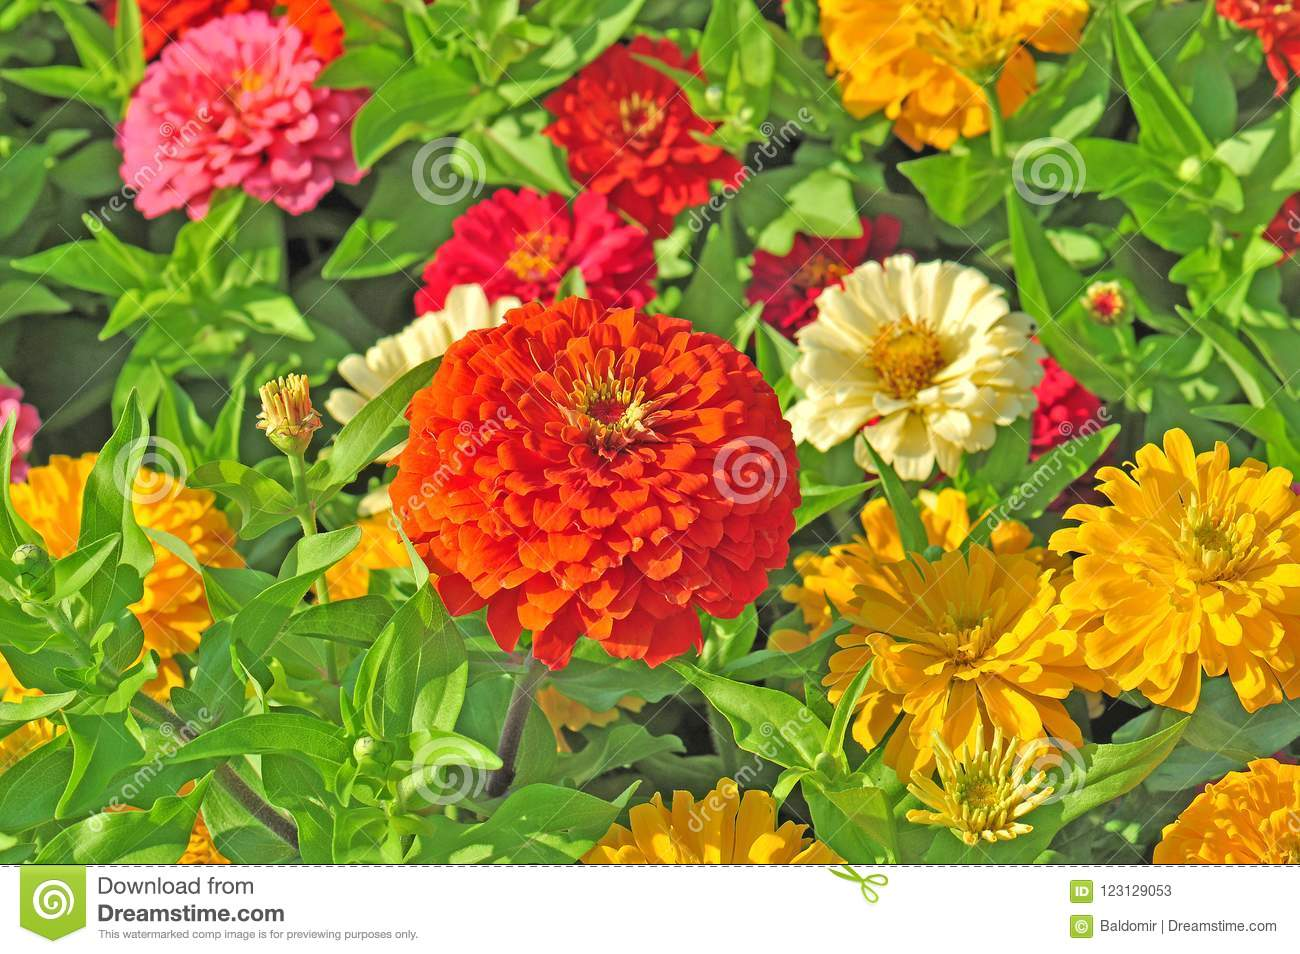 Garden With Multicolored Flowers Stock Image - Image of flowers ...